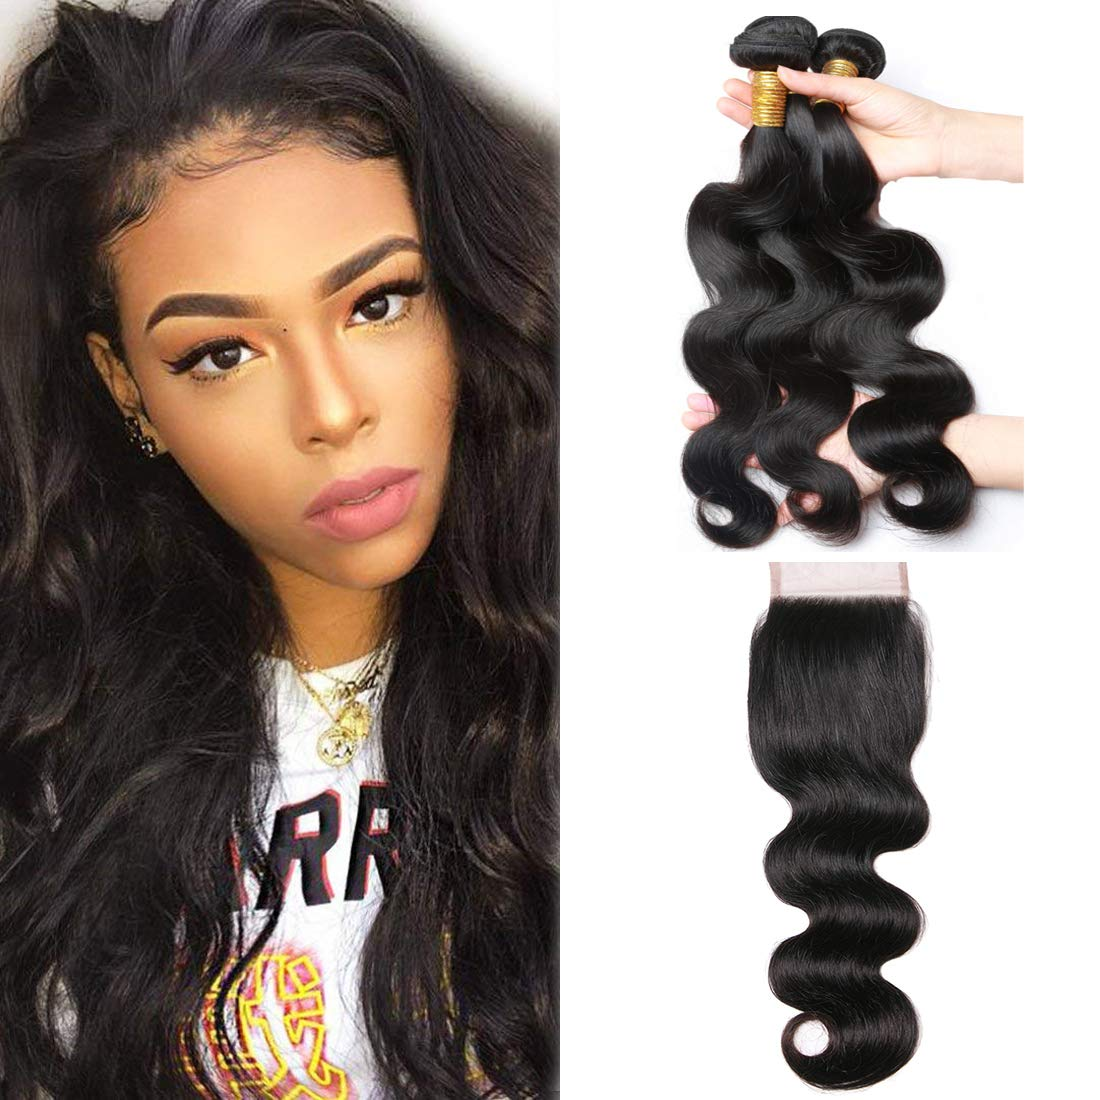 ALIMICE Brazilian Body Wave Bundles With 4x4 Lace Closure with Body Wave 3 bundles Virgin Human Hair Bundles Natural Color (12 14 16 + 10 closure) by ALIMICE